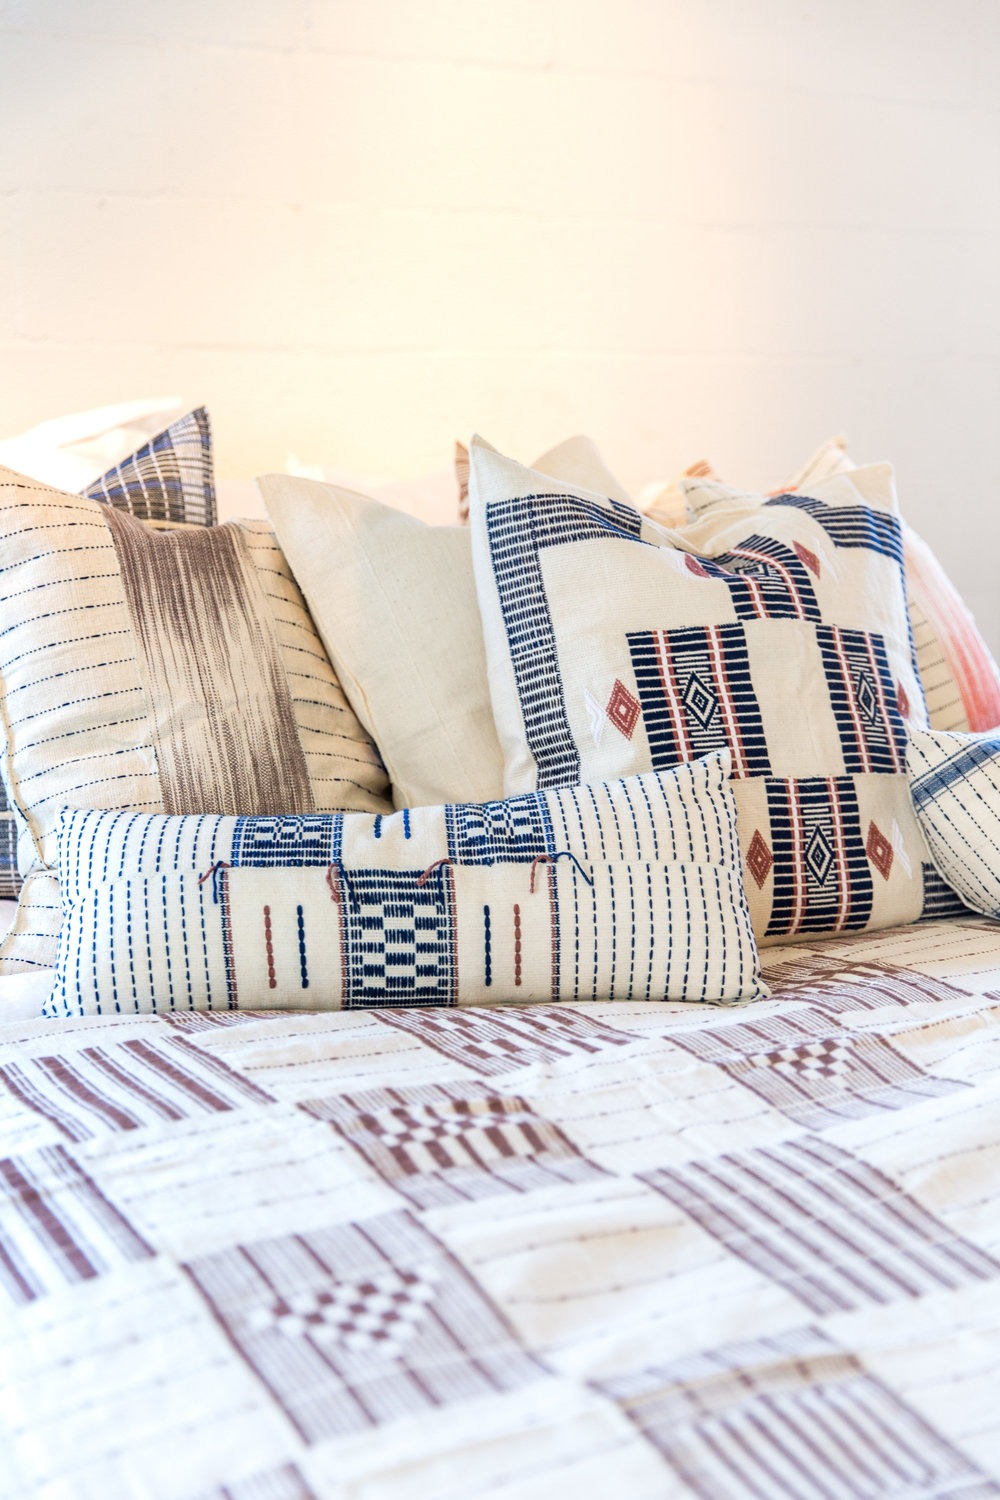 Five and Six Textiles